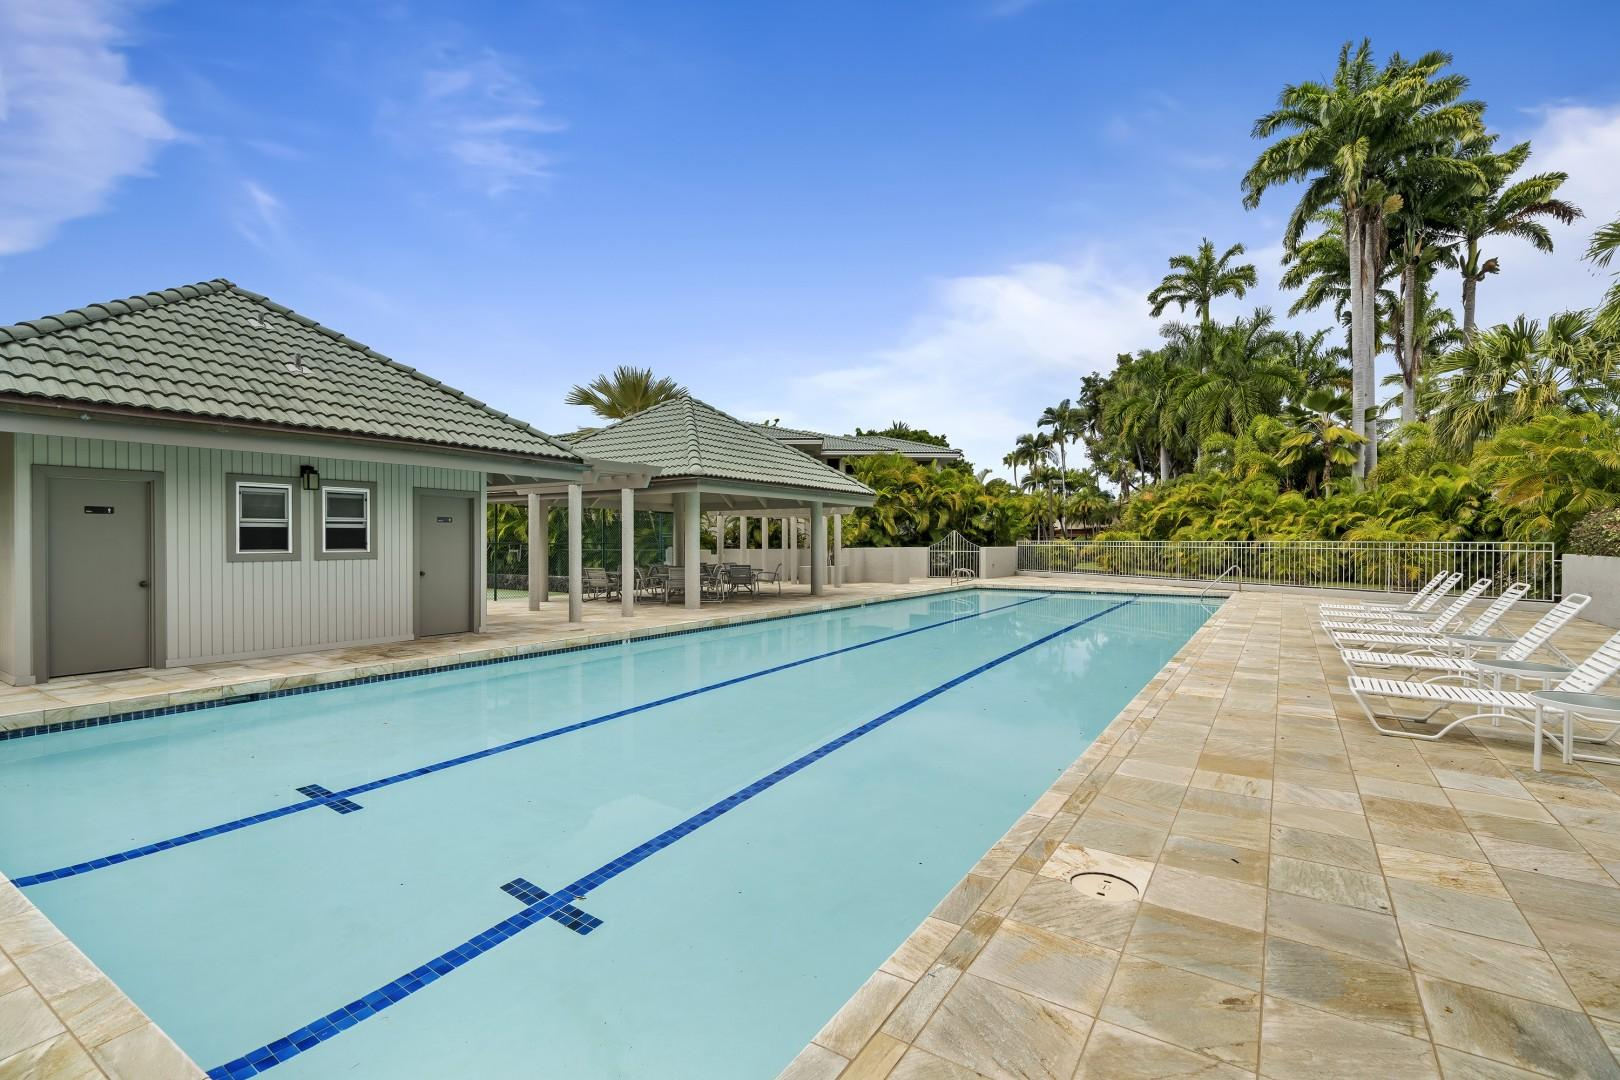 Community pool accessible to the guests of Alii Point